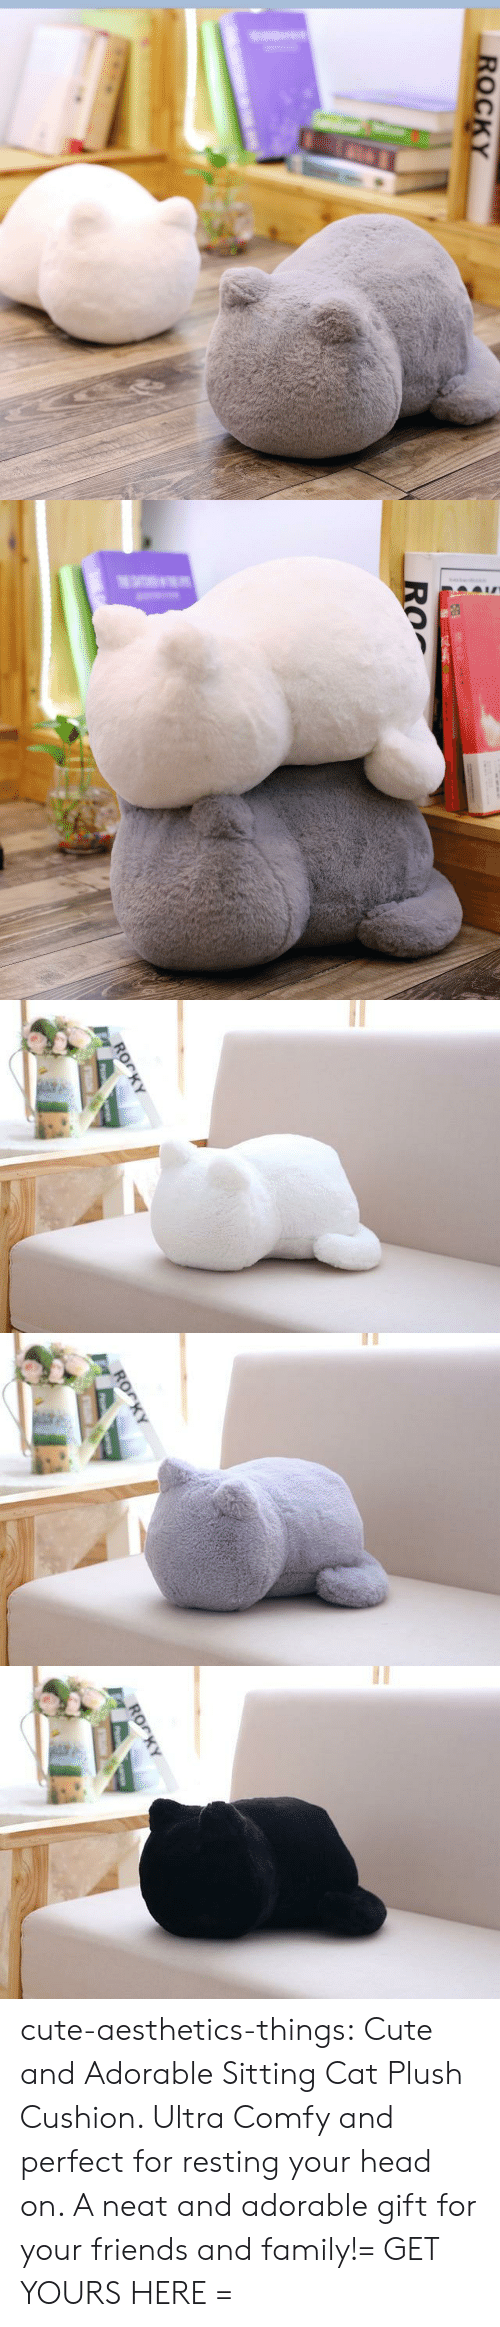 Cute, Family, and Friends: ROrKY   ROrKY cute-aesthetics-things:  Cute and Adorable Sitting Cat Plush Cushion. Ultra Comfy and perfect for resting your head on. A neat and adorable gift for your friends and family!= GET YOURS HERE =